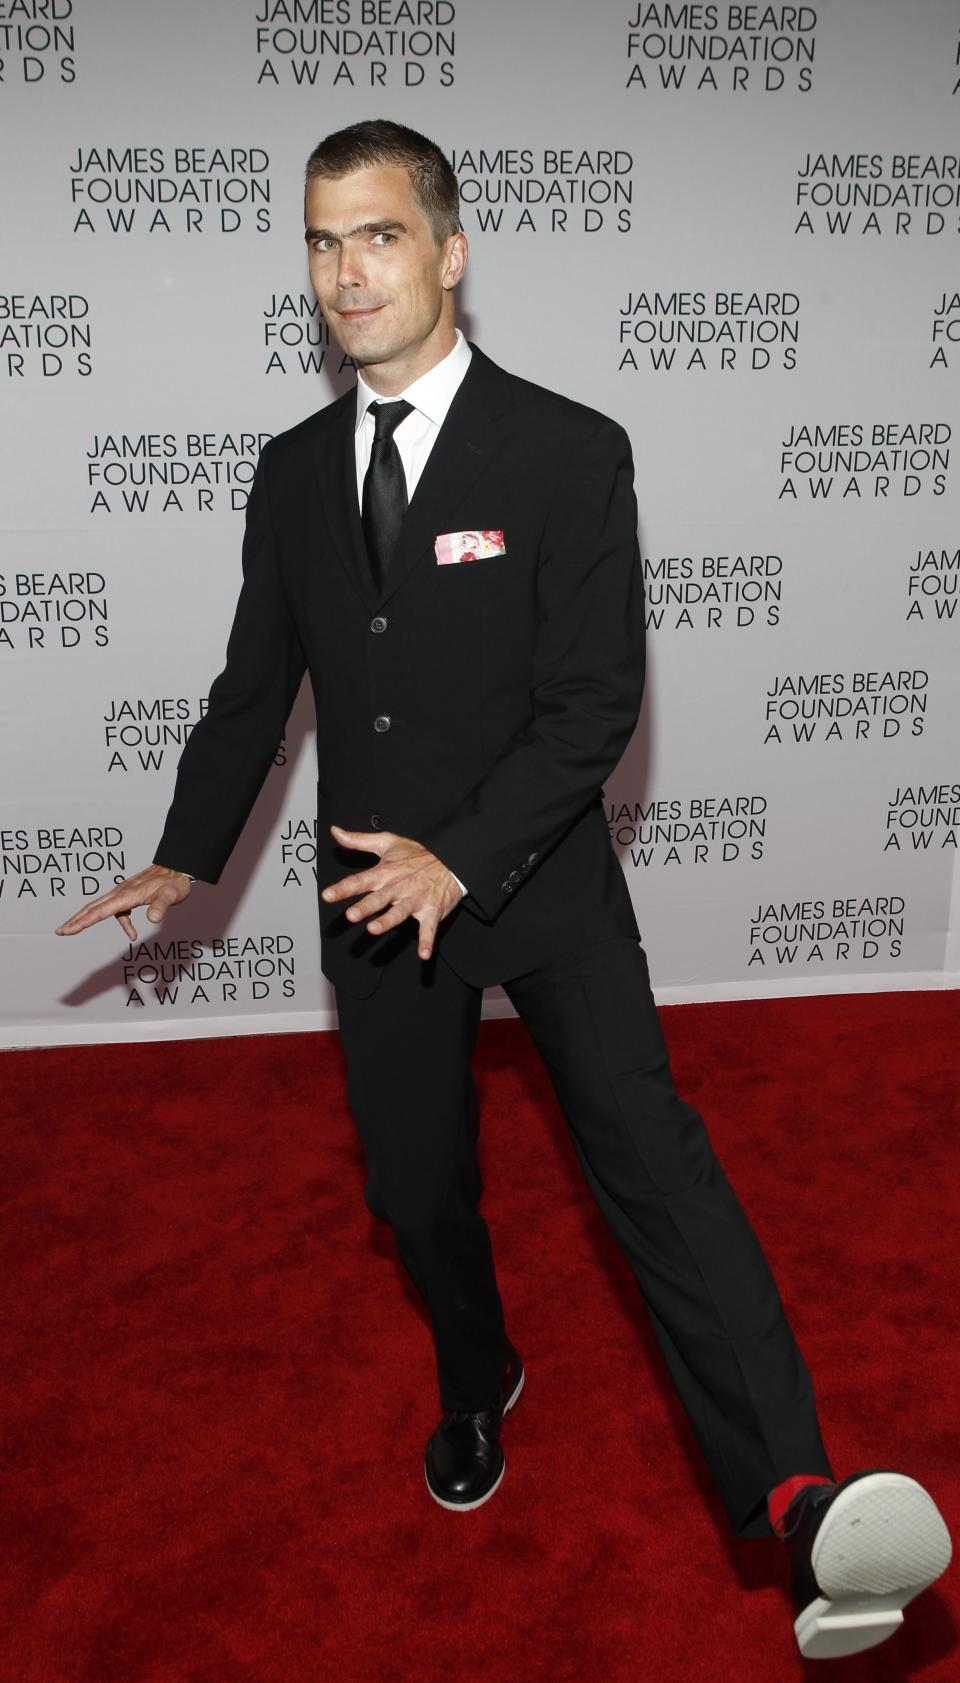 Chef Hugh Acheson arrives for the James Beard Foundation Awards, Monday, May 7, 2012, in New York. (AP Photo/Jason DeCrow)